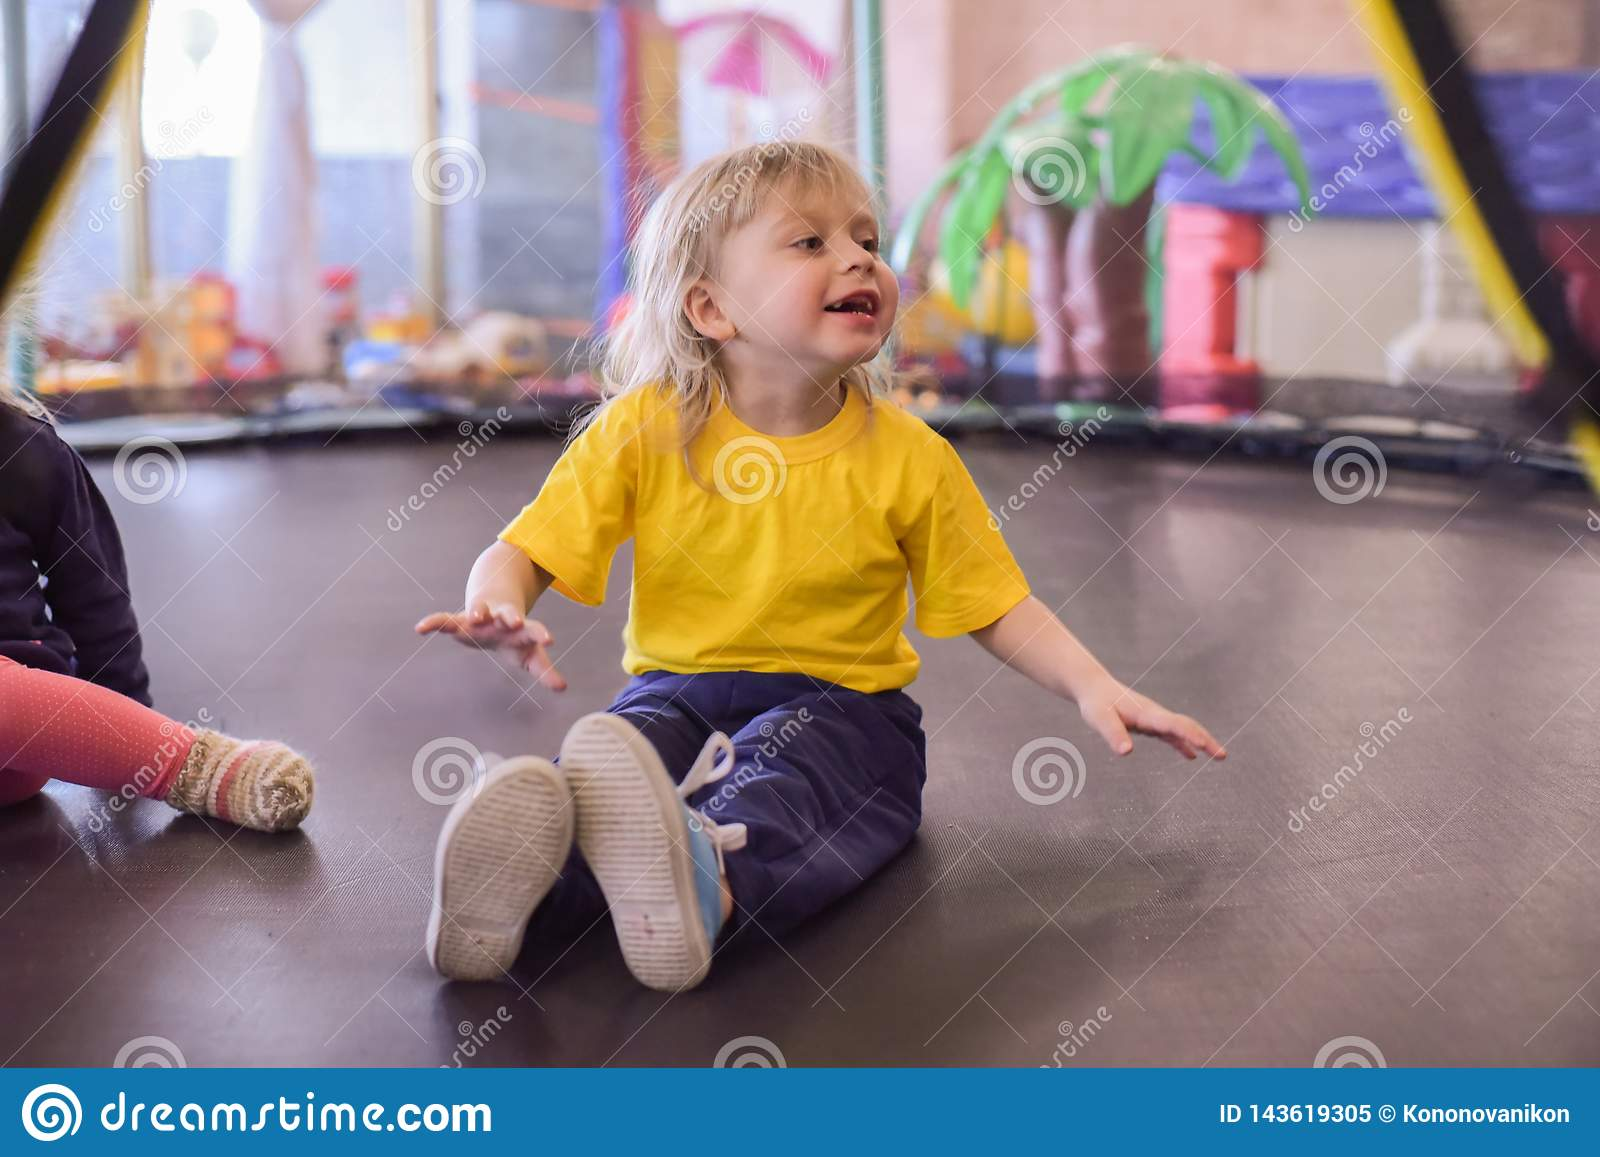 Portrait of a blond boy in a yellow t-shirt. The child smiles and plays in the children`s playroom. The child jumps on the